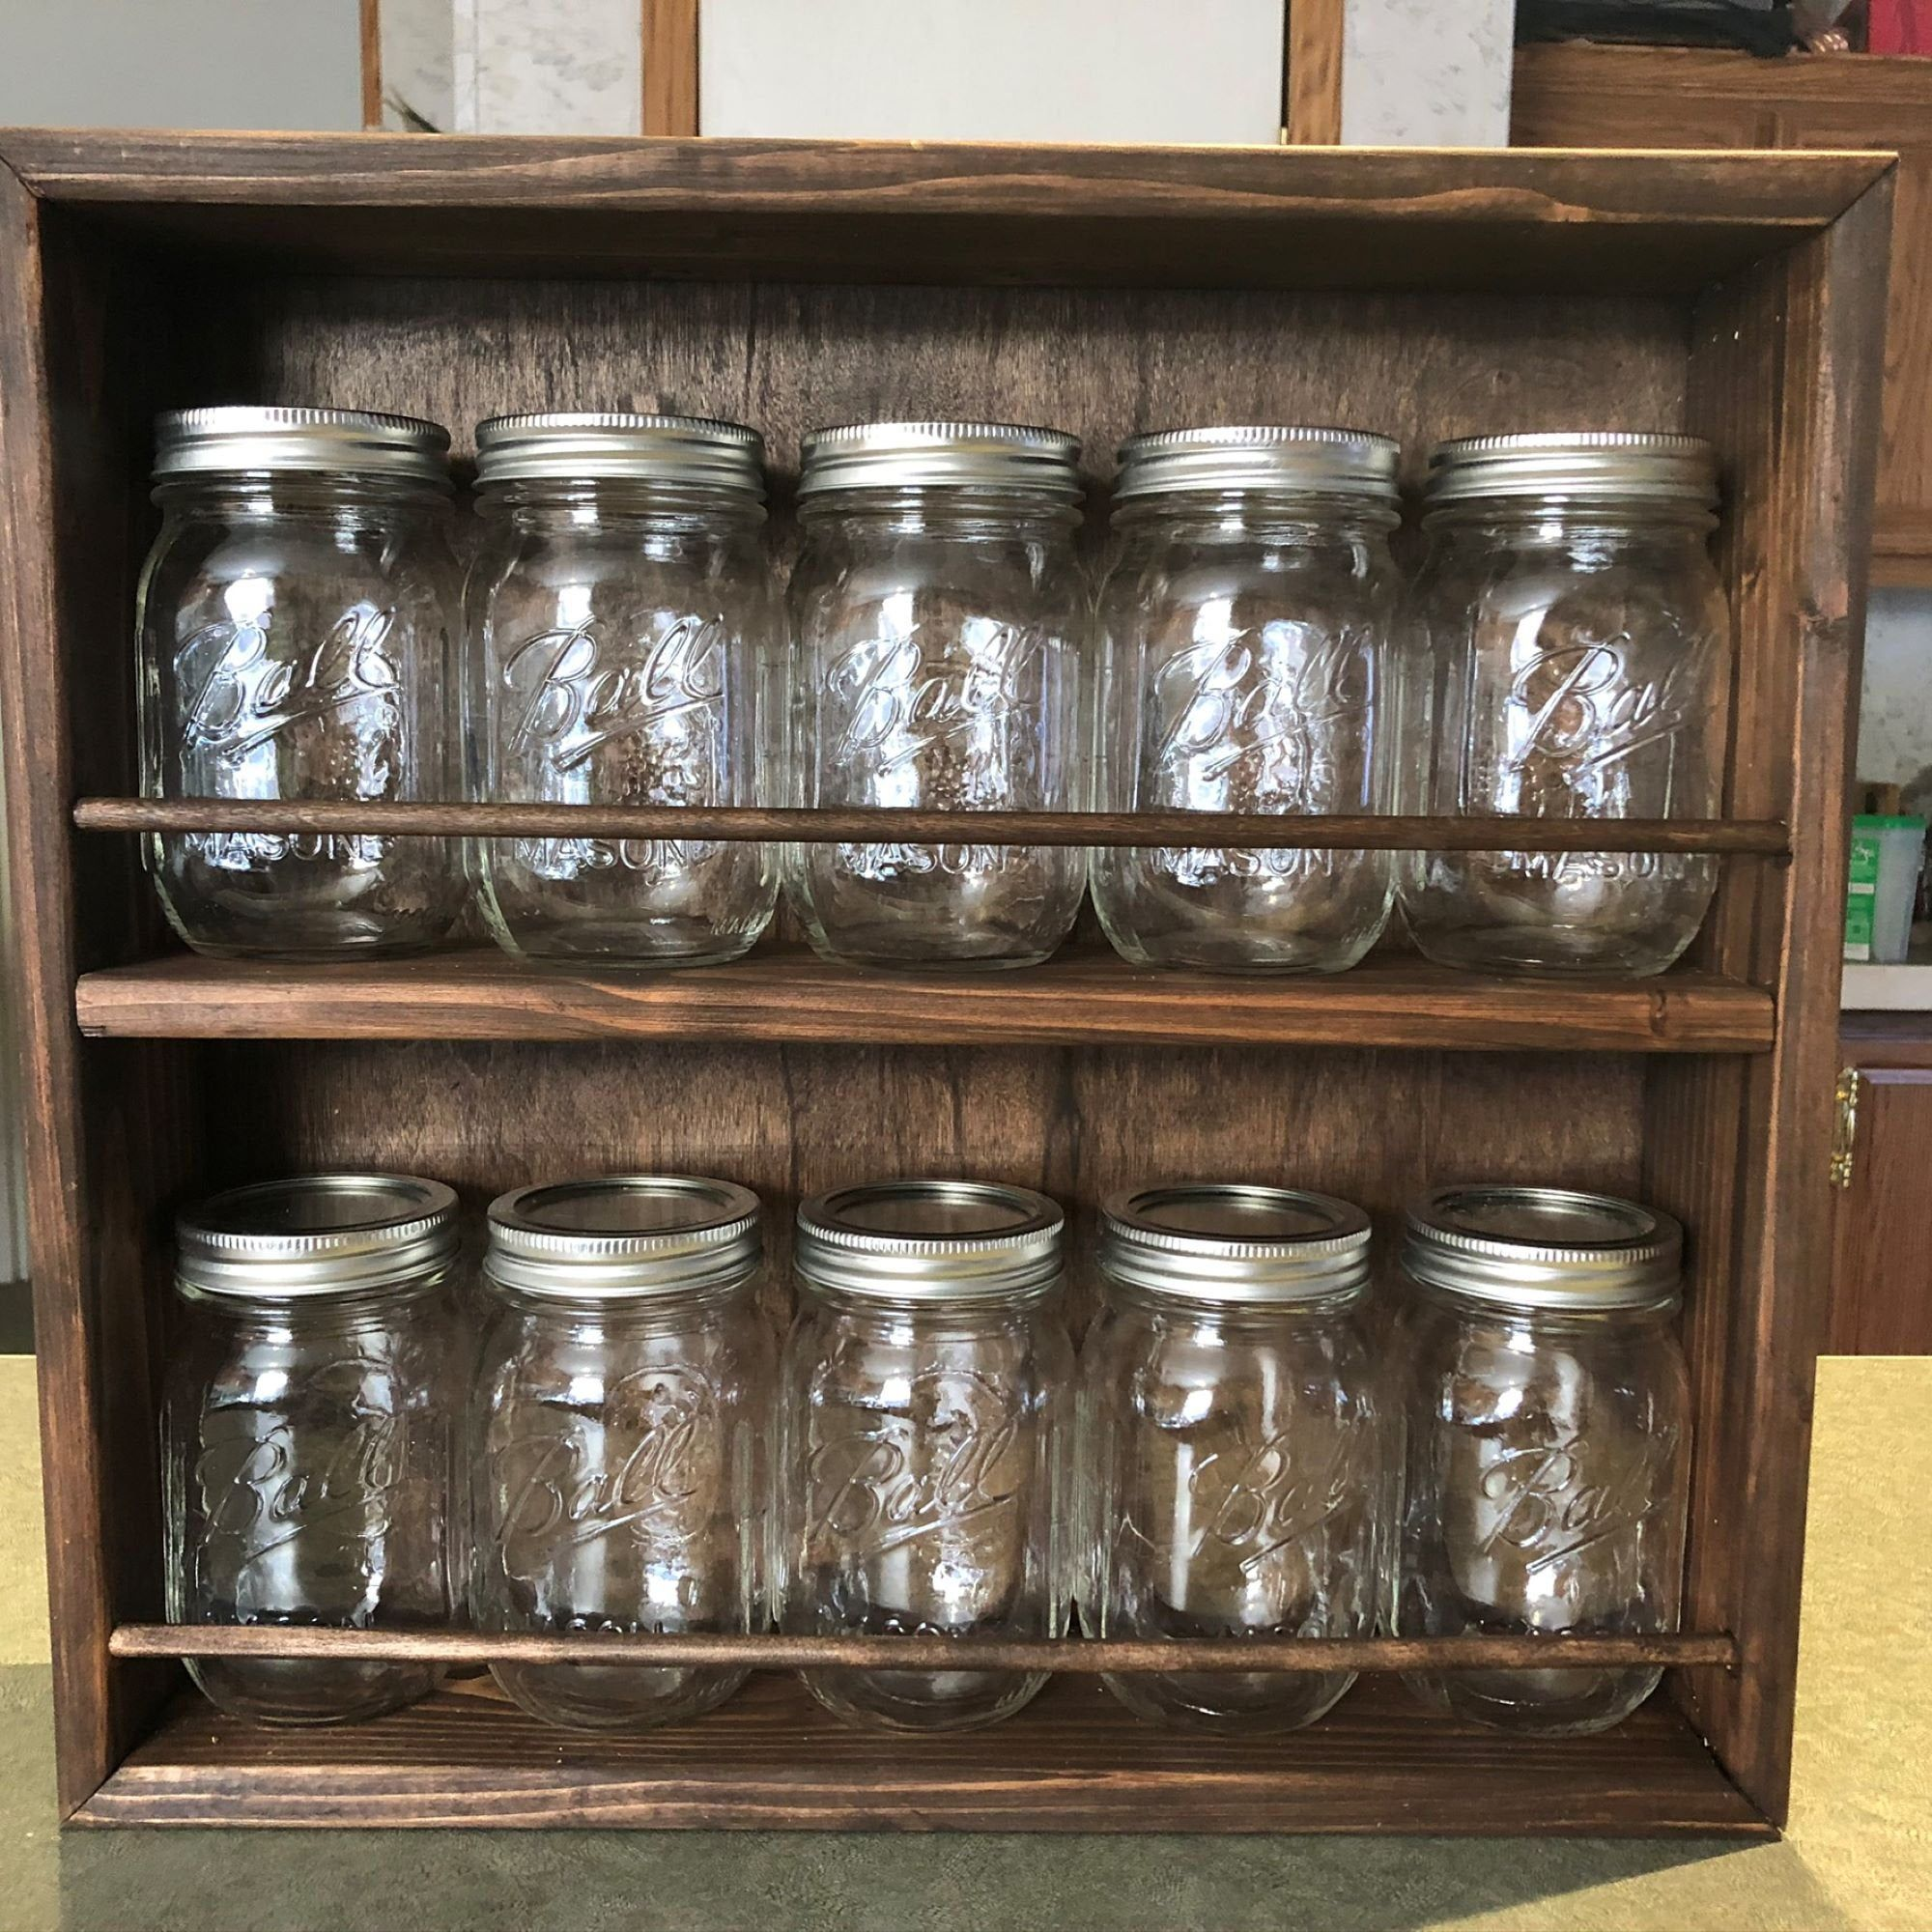 Pin On Organize The Pantry